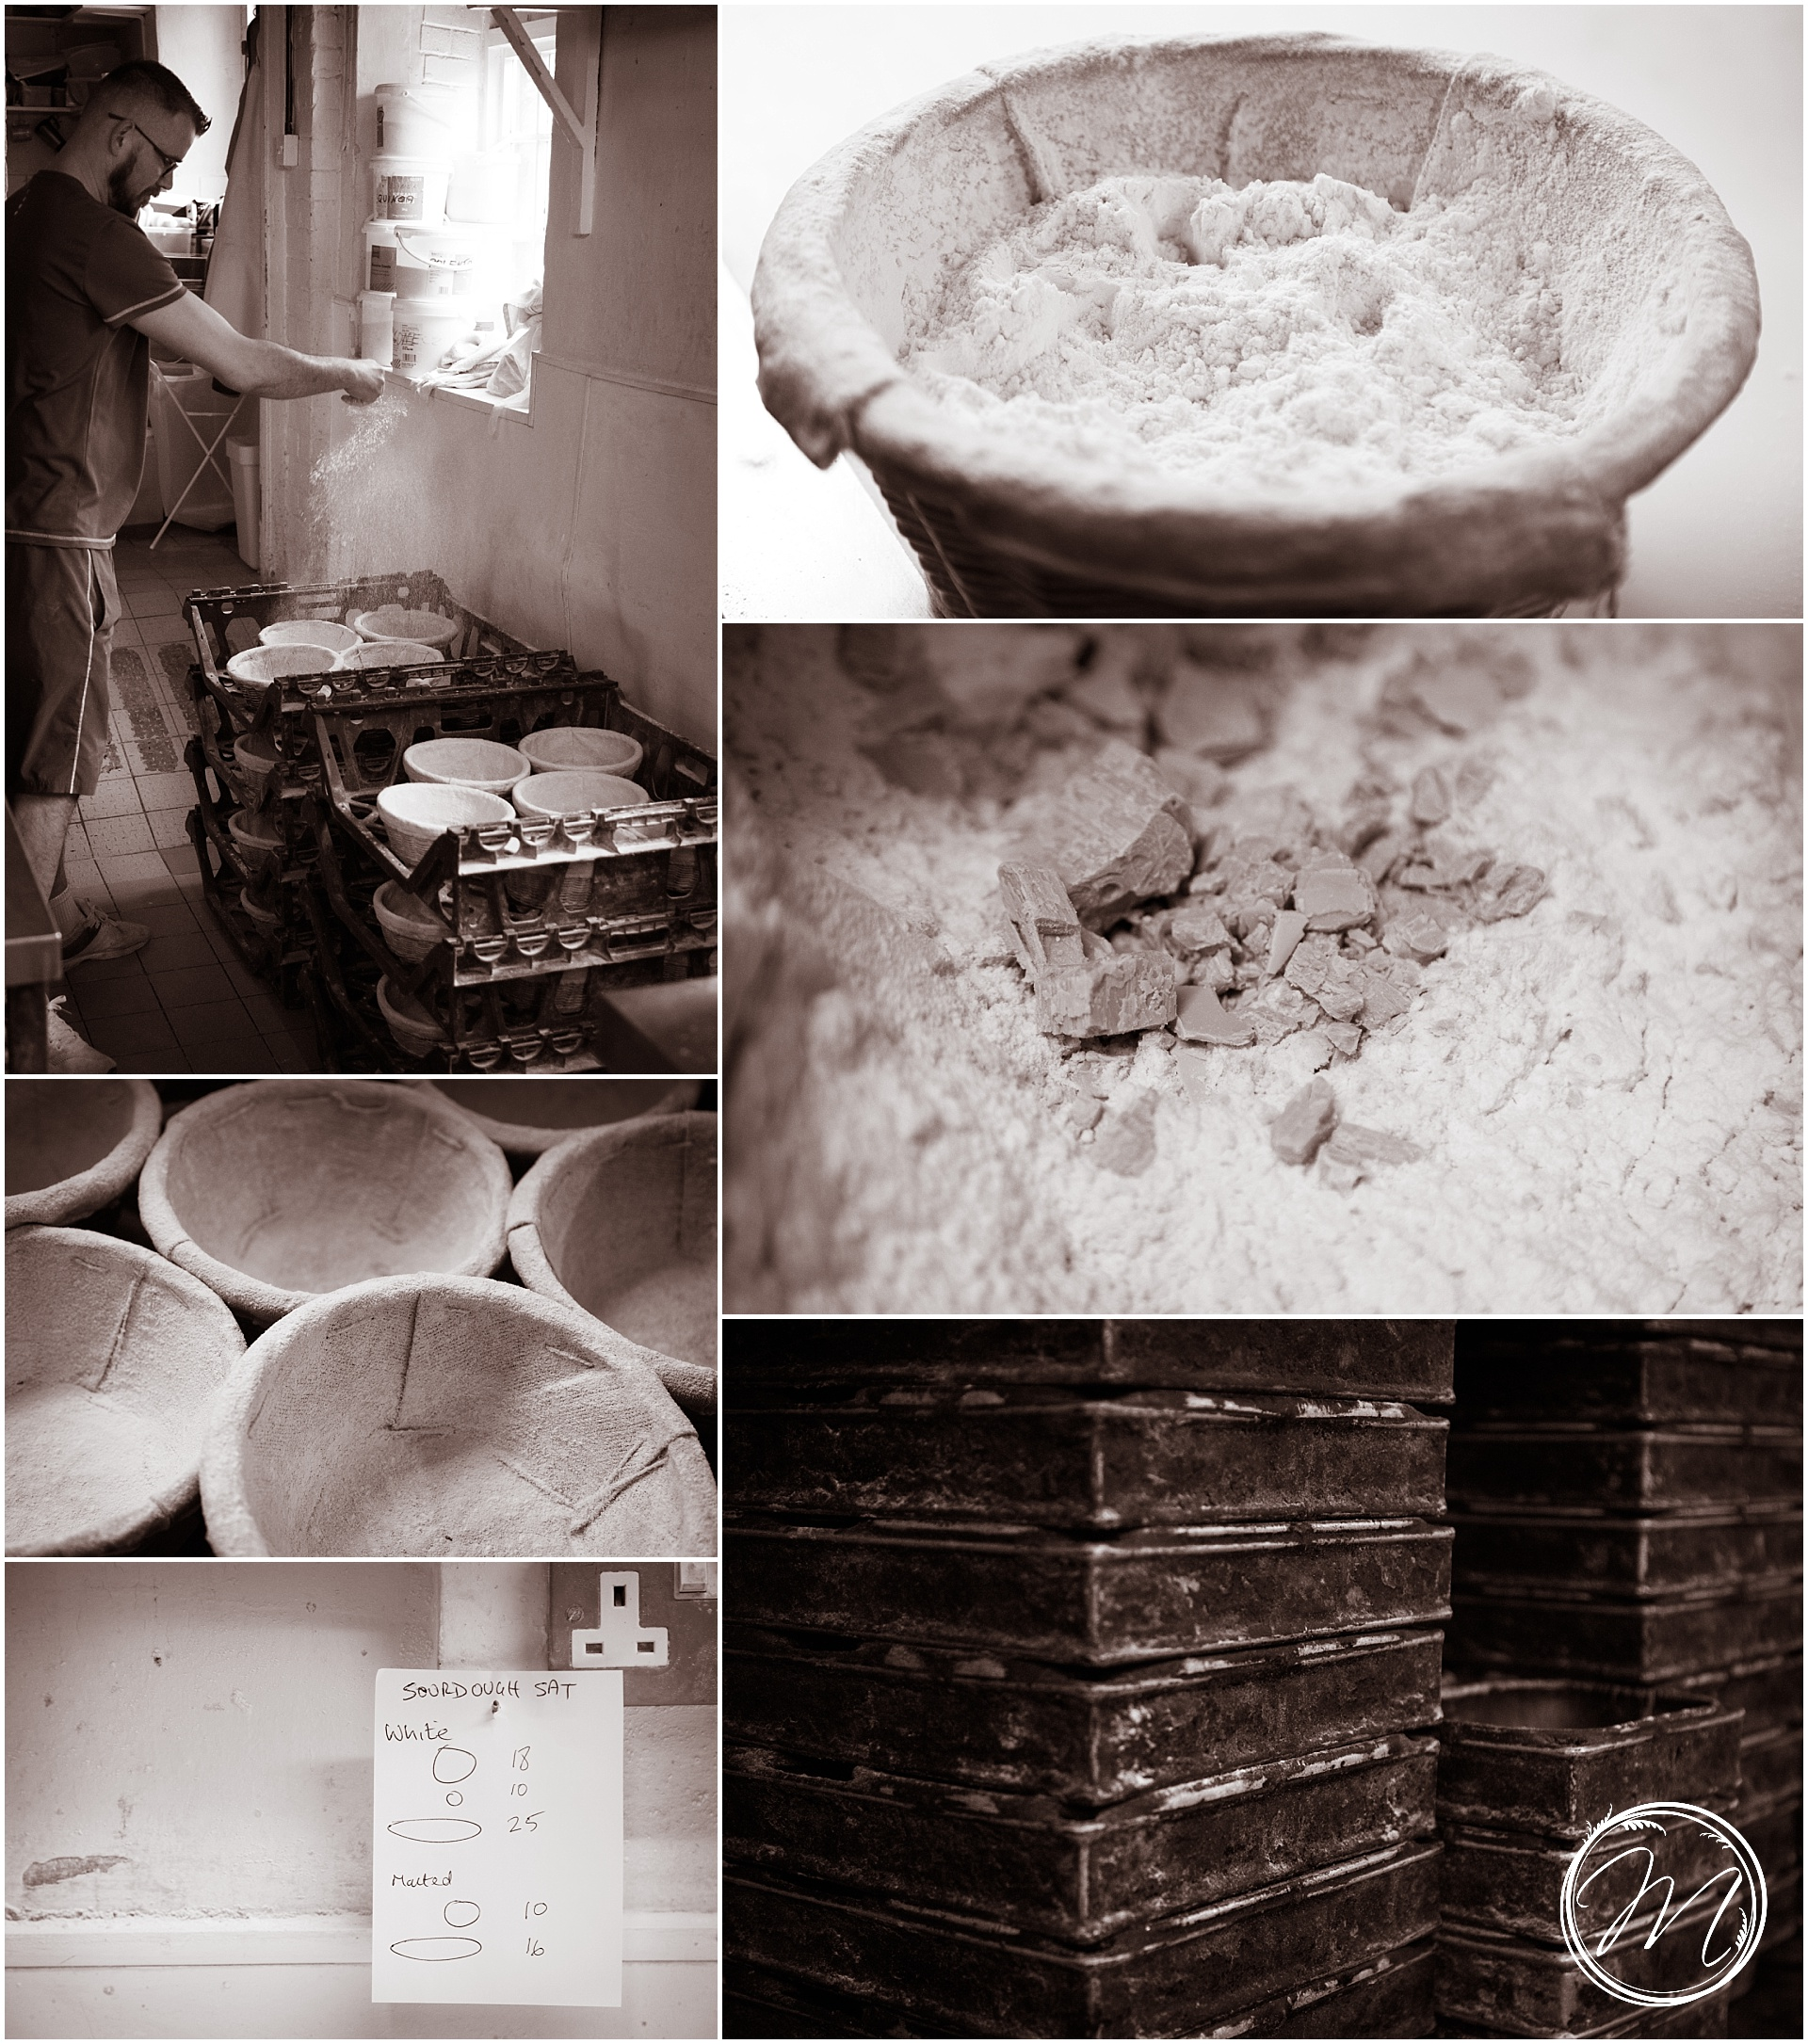 Images of Leakers bakery in Bridport